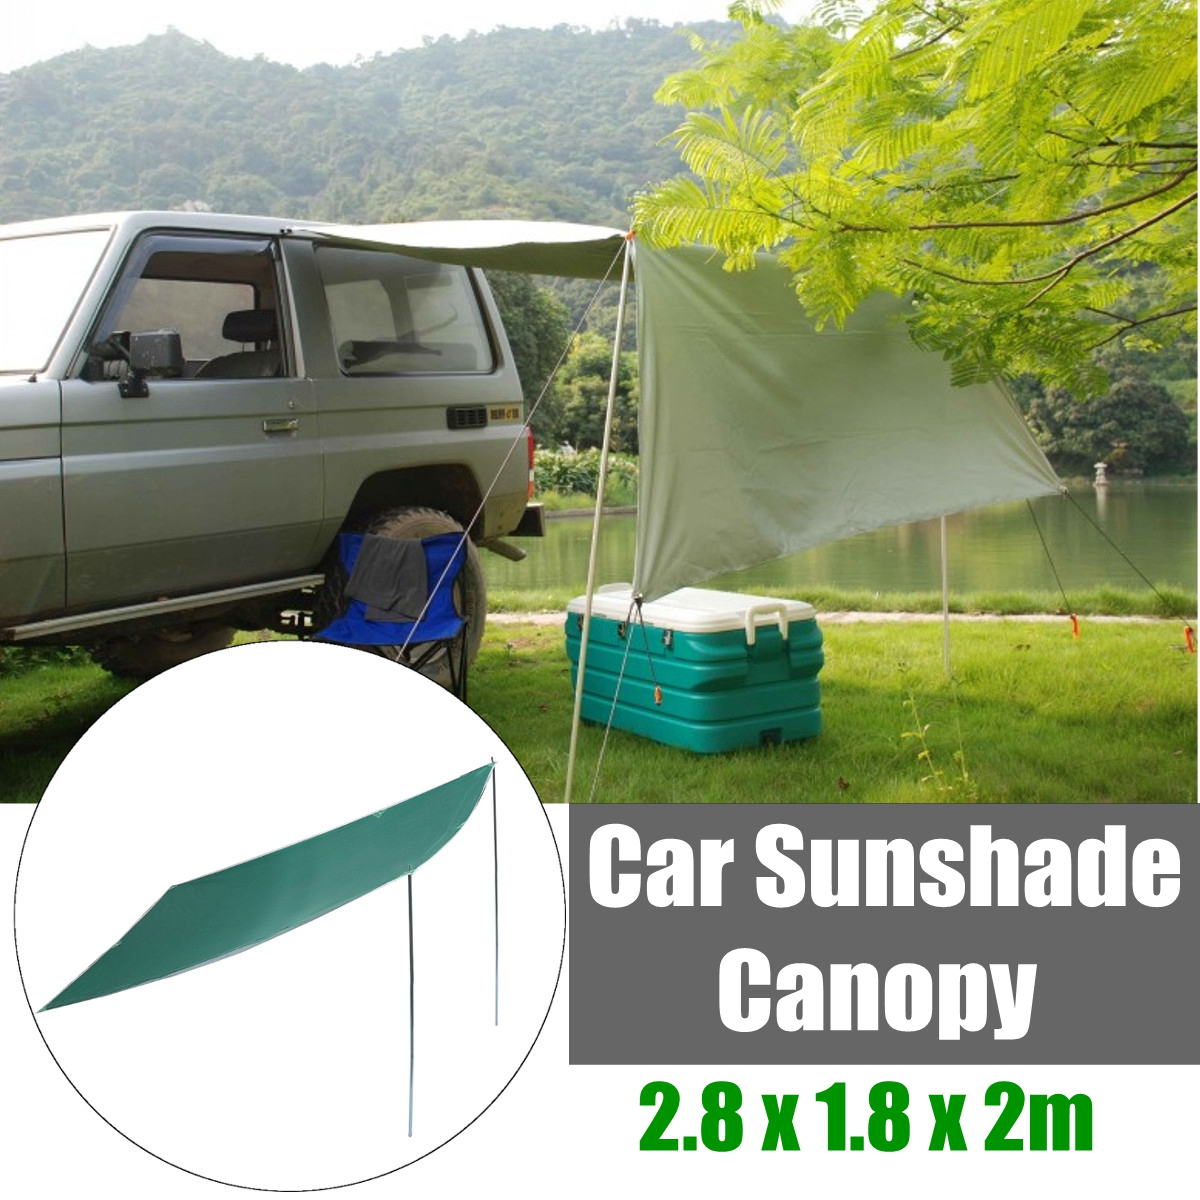 2.8 X 1.8m Sunshade Tent Car Outdoor Folding Waterproof Camping Roof Top Tent Folding Anti-UV Car Canopy Sun Shelter foldable outdoor car tent umbrella sunshade roof cover cloth full automatic anti uv waterproof windproof replaceable car cover